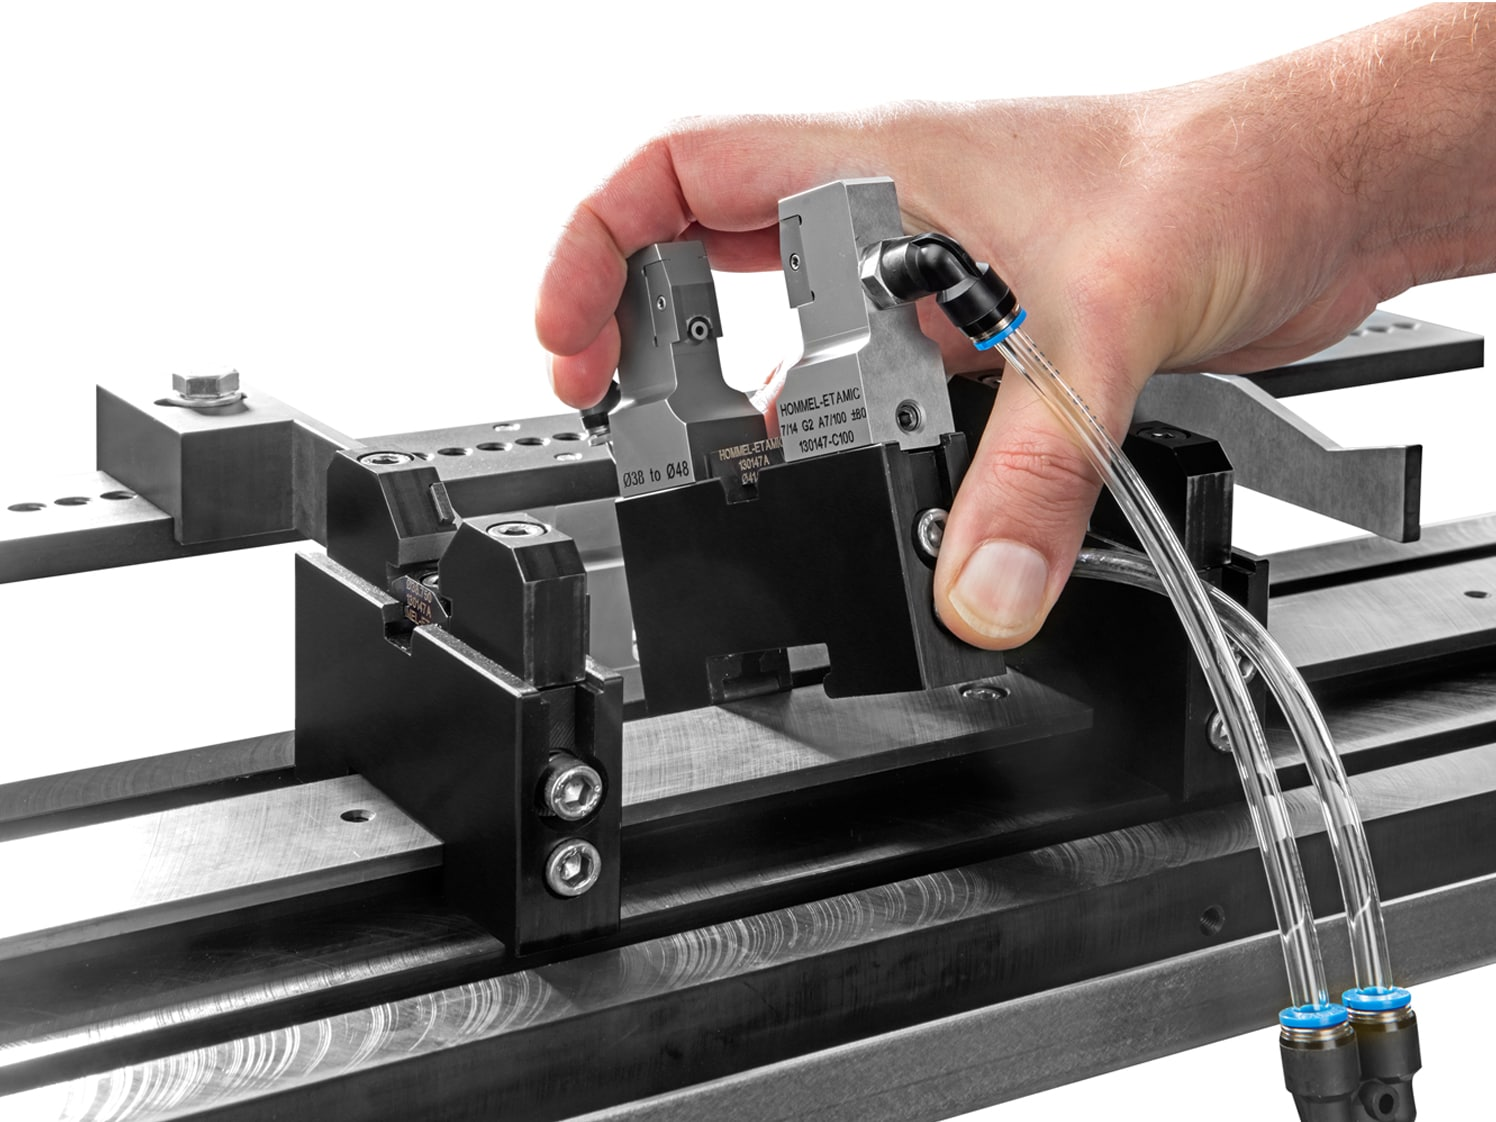 AG380 - Simple spacer and a fast clamping system